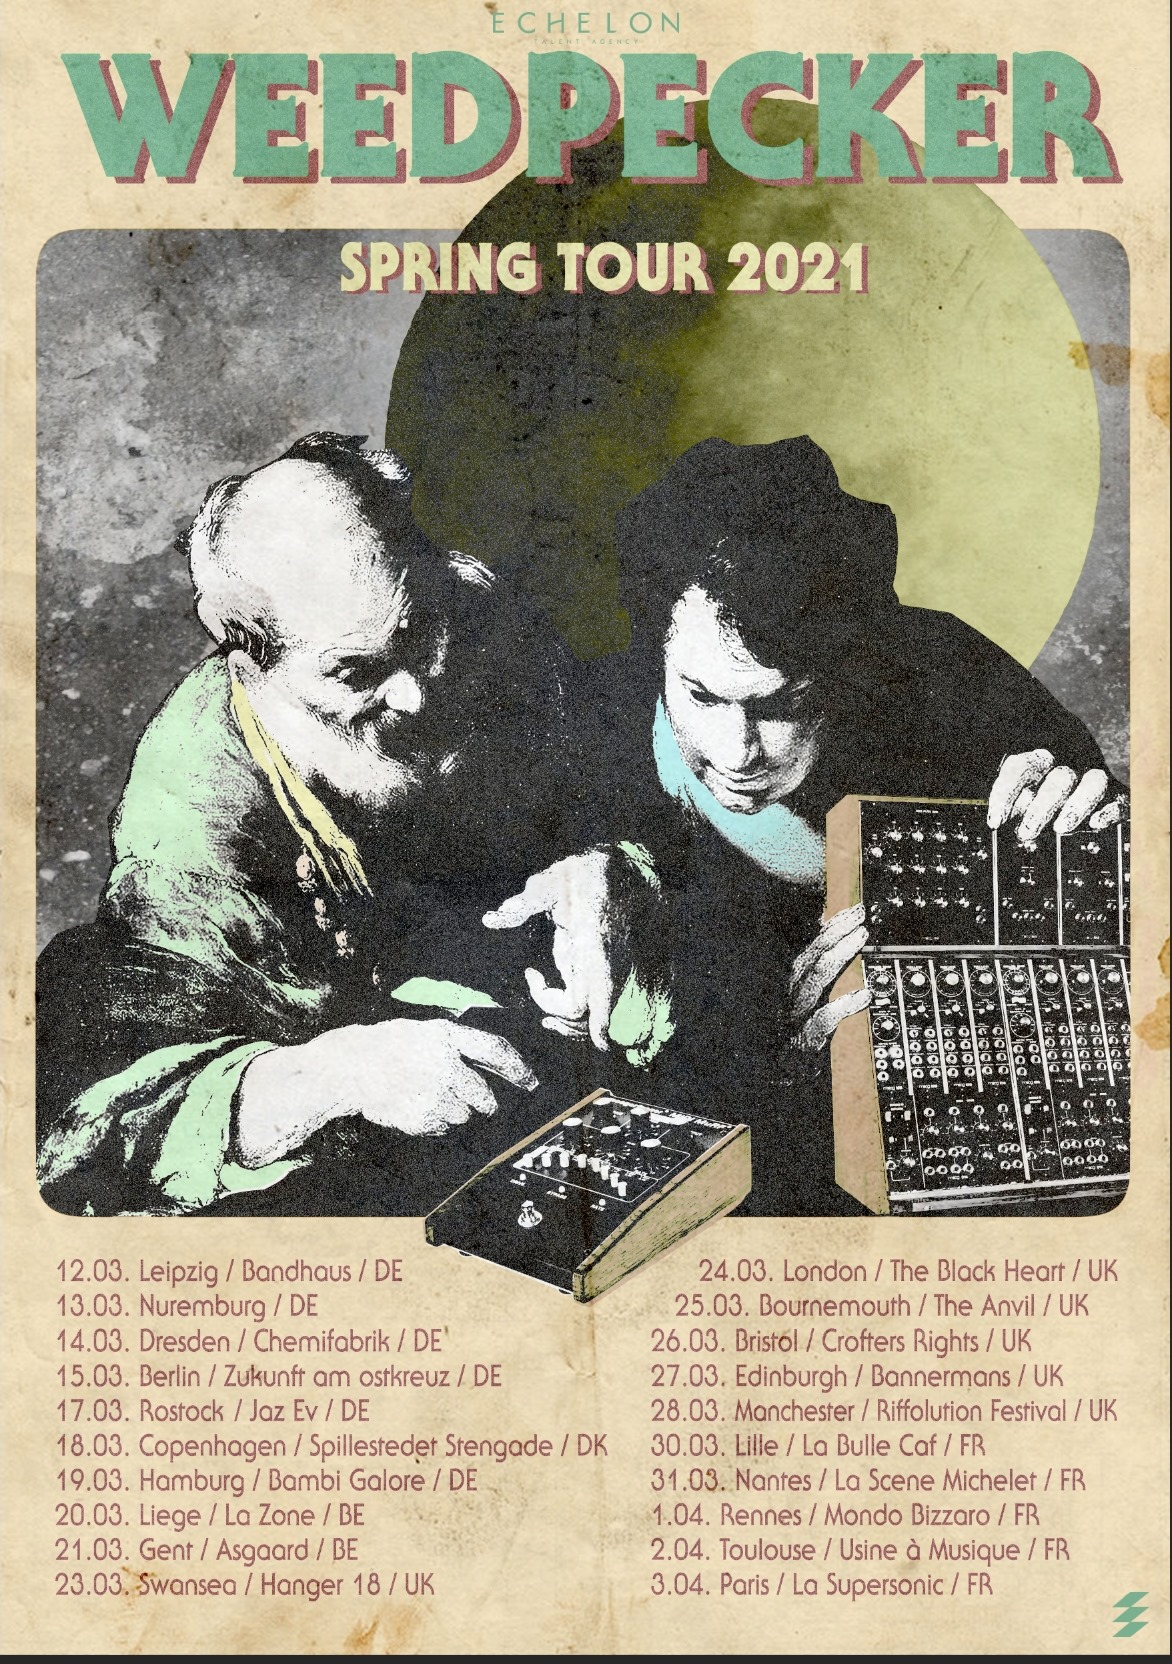 WEEDPECKER SPRING 2021 TOUR